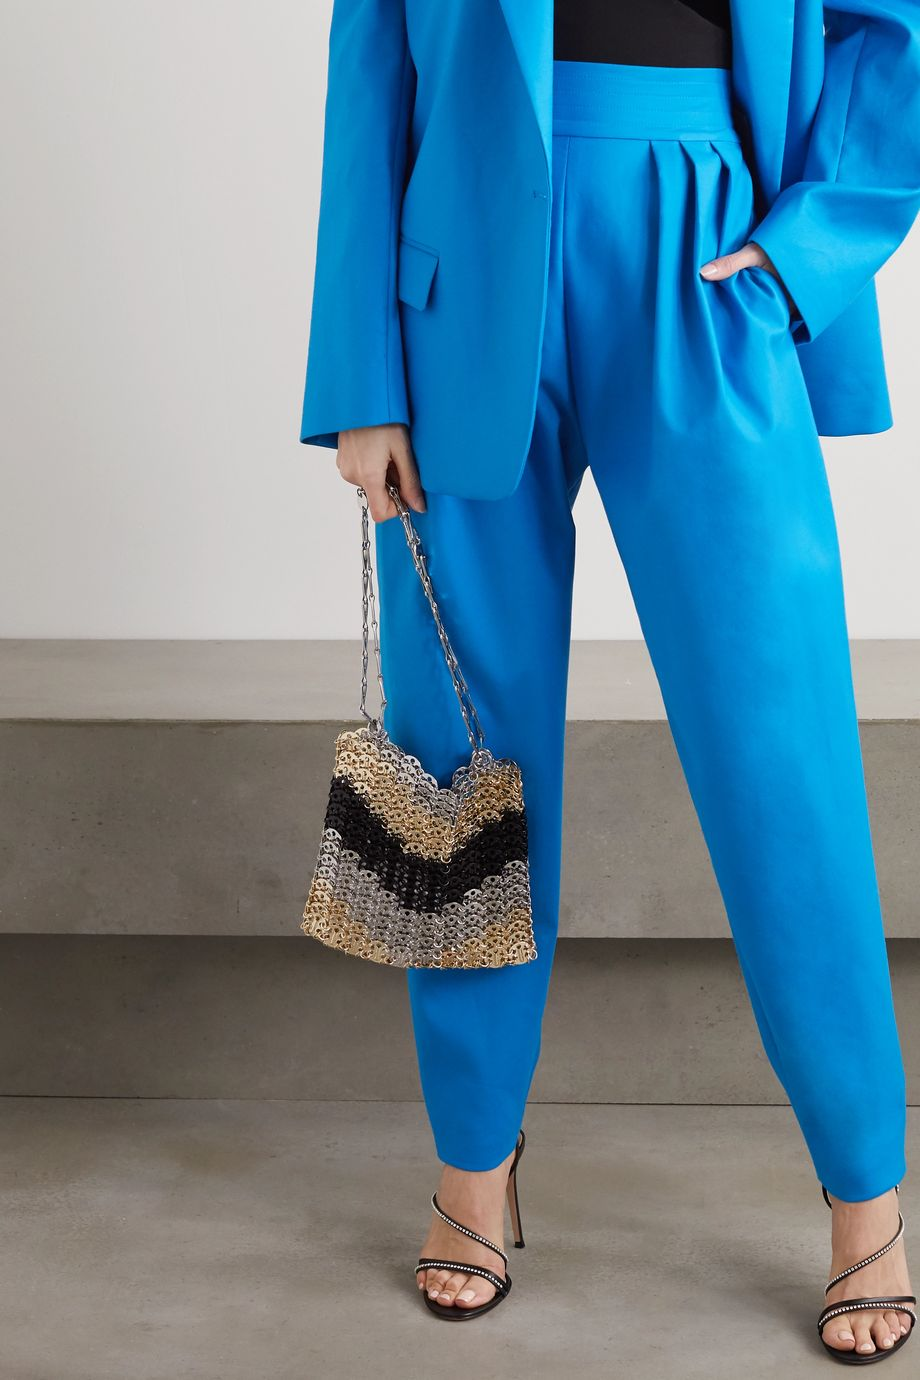 Paco Rabanne Iconic 1969 paillette-embellished chainmail shoulder bag